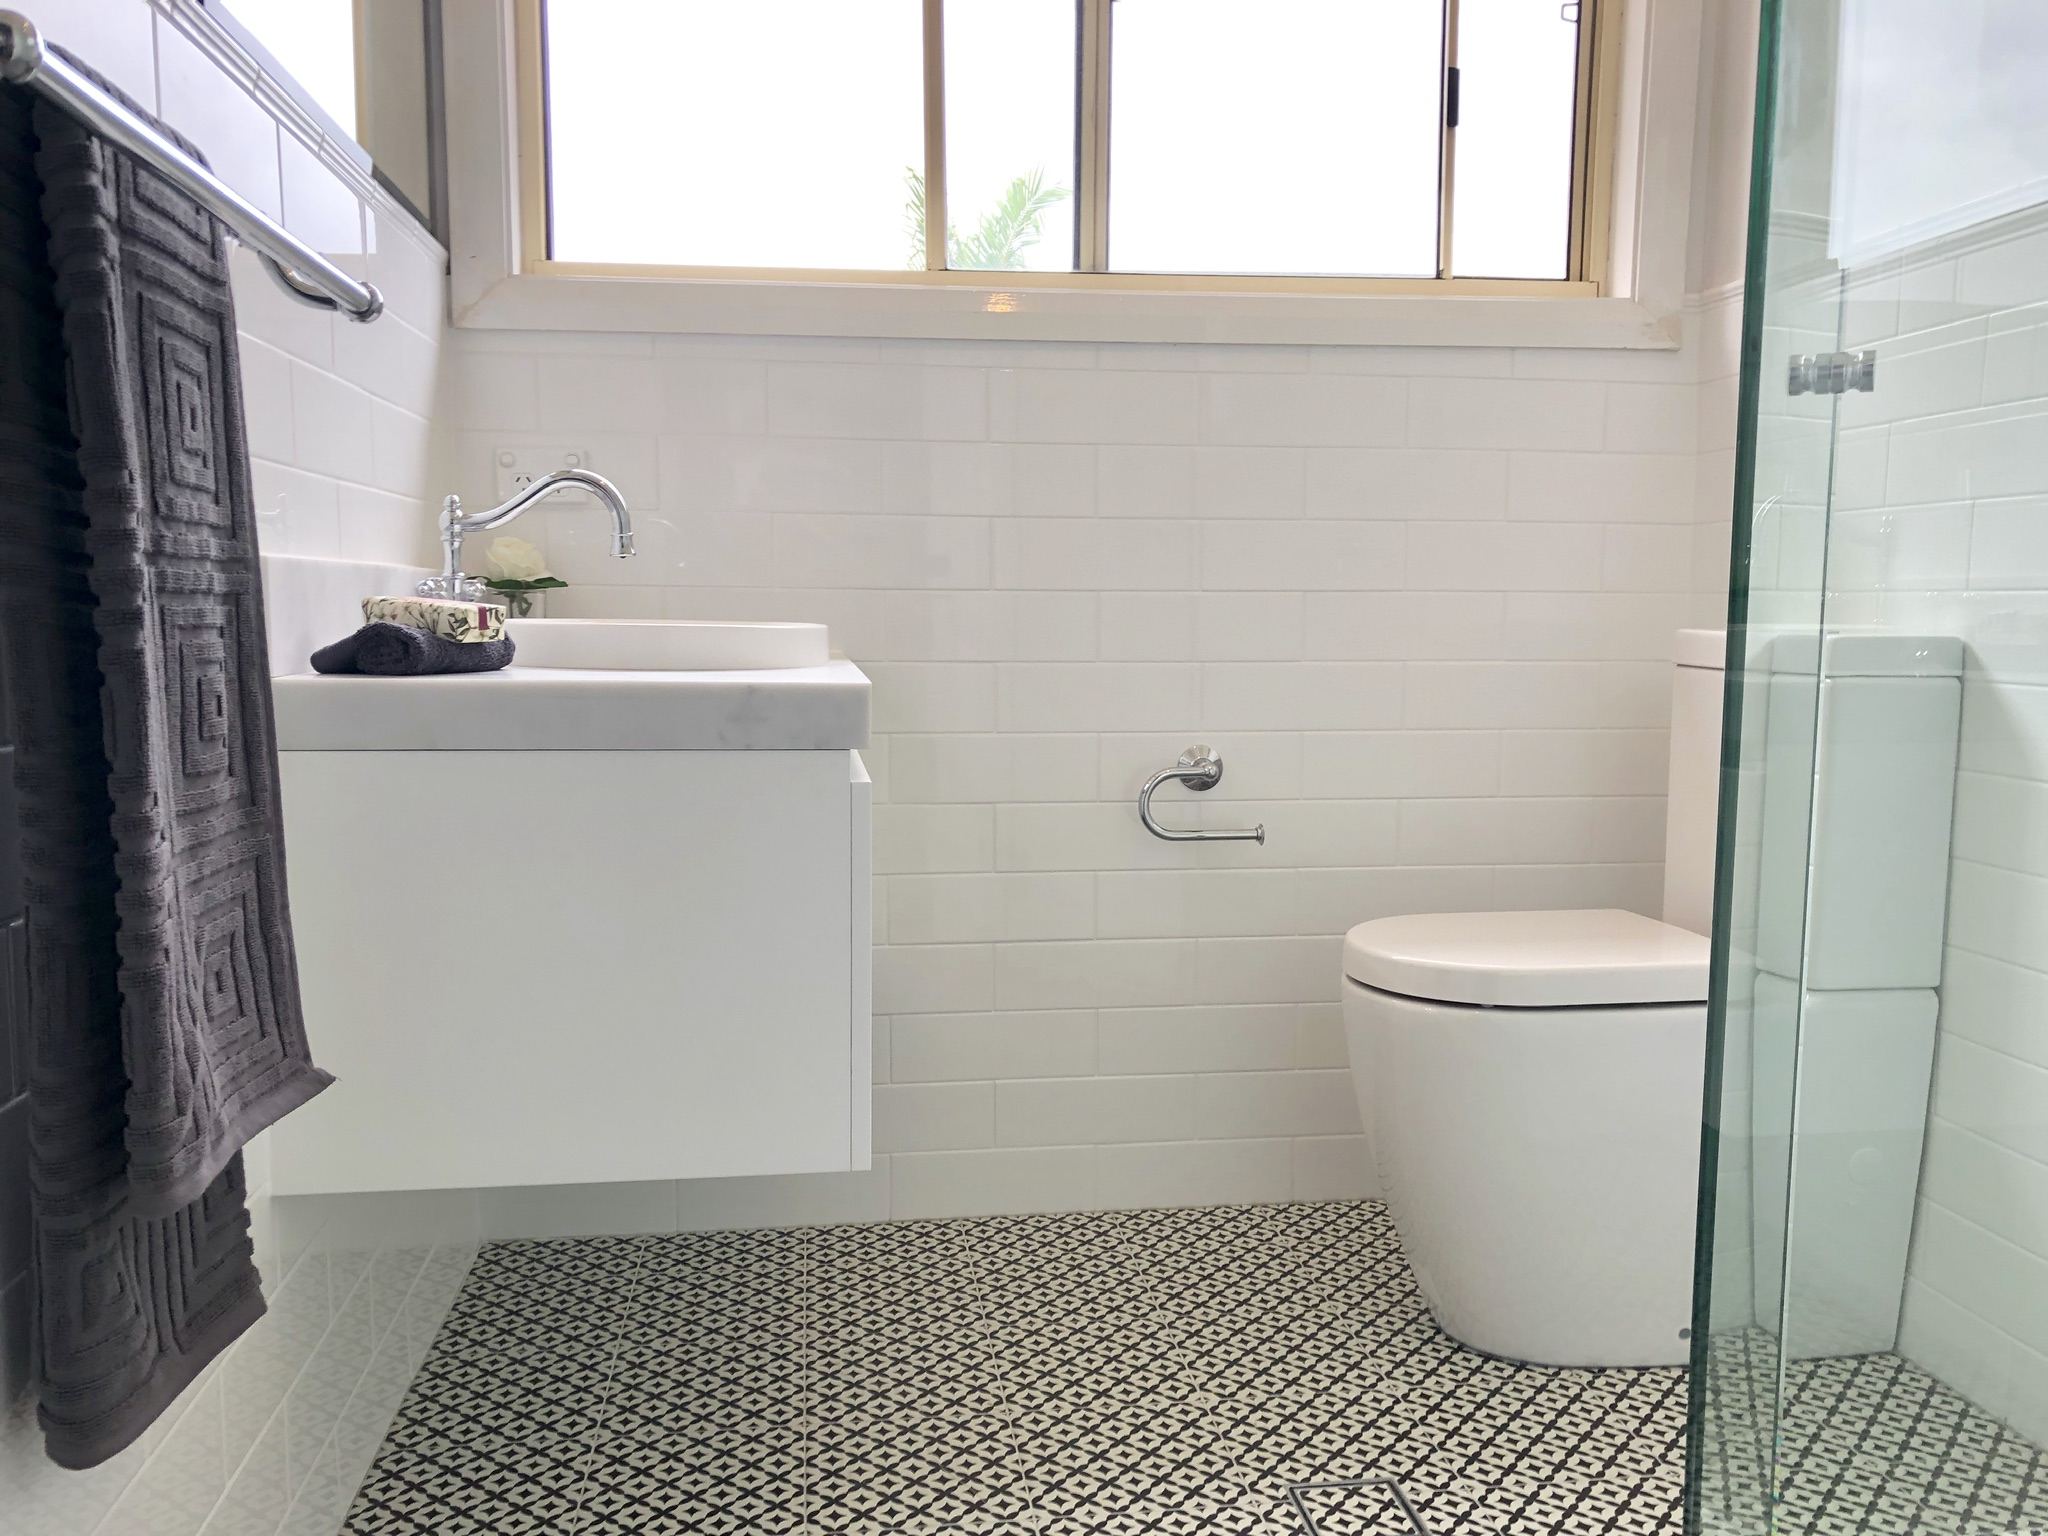 Gorgeous wall hung vanity, antique style tapware & fittings with subway wall tile and feature floor - bathroom renovation by Master Bathrooms & Kitchens.